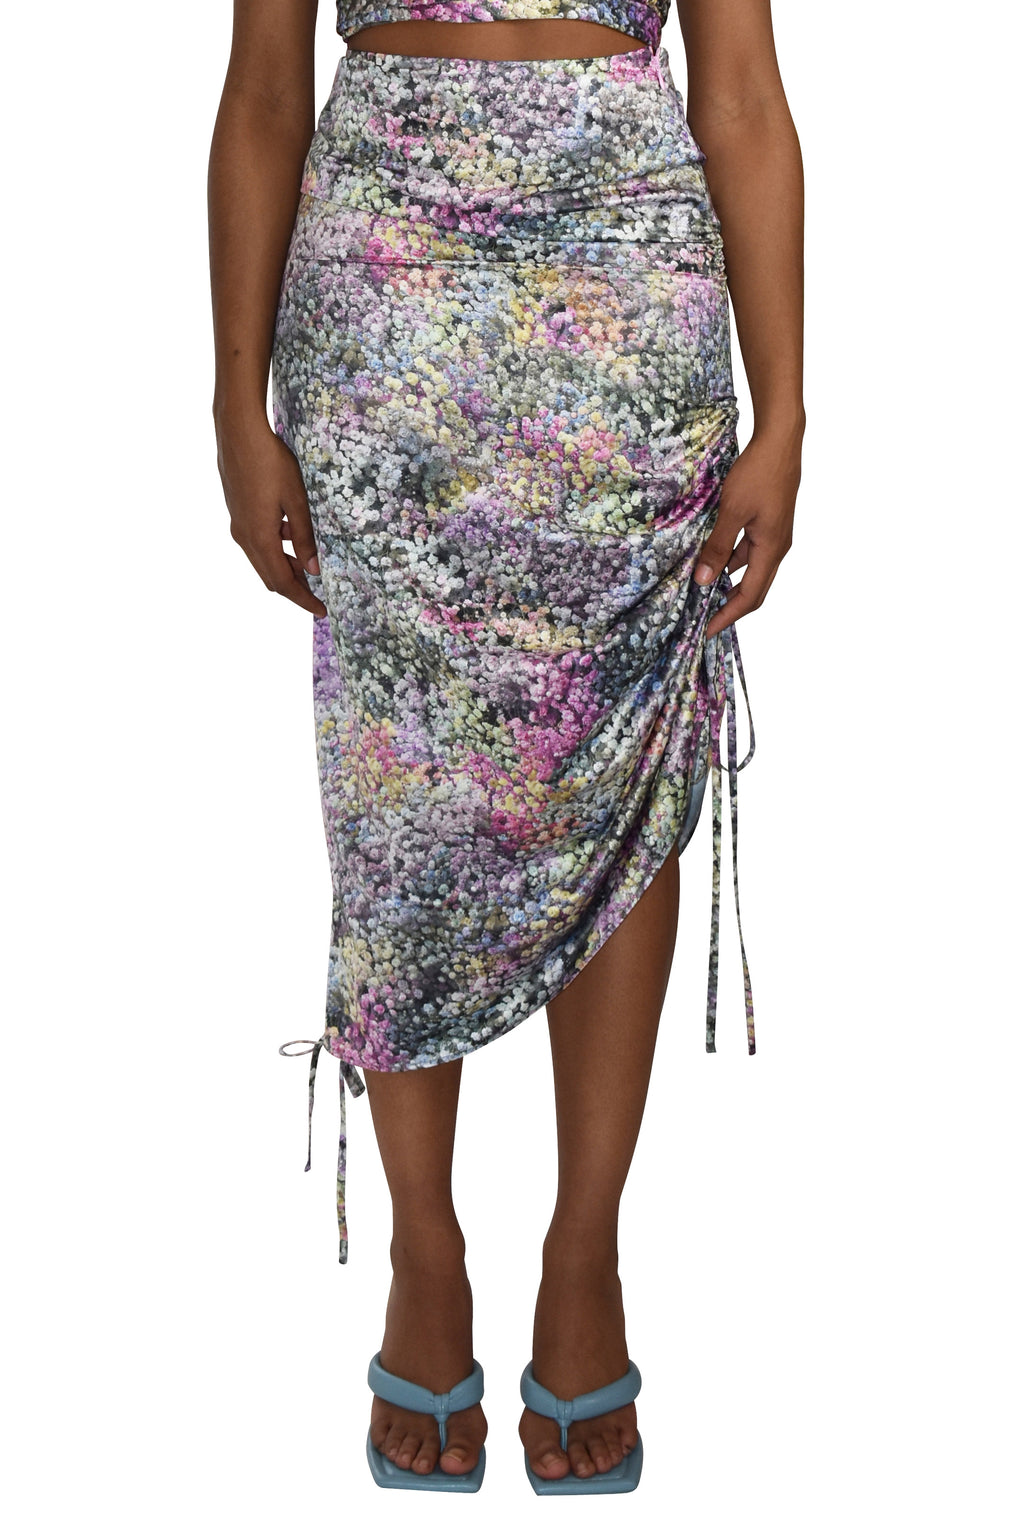 No Wallflower Project Satin Convertible Ripple Midi Skirt Rainbow Gypsophila